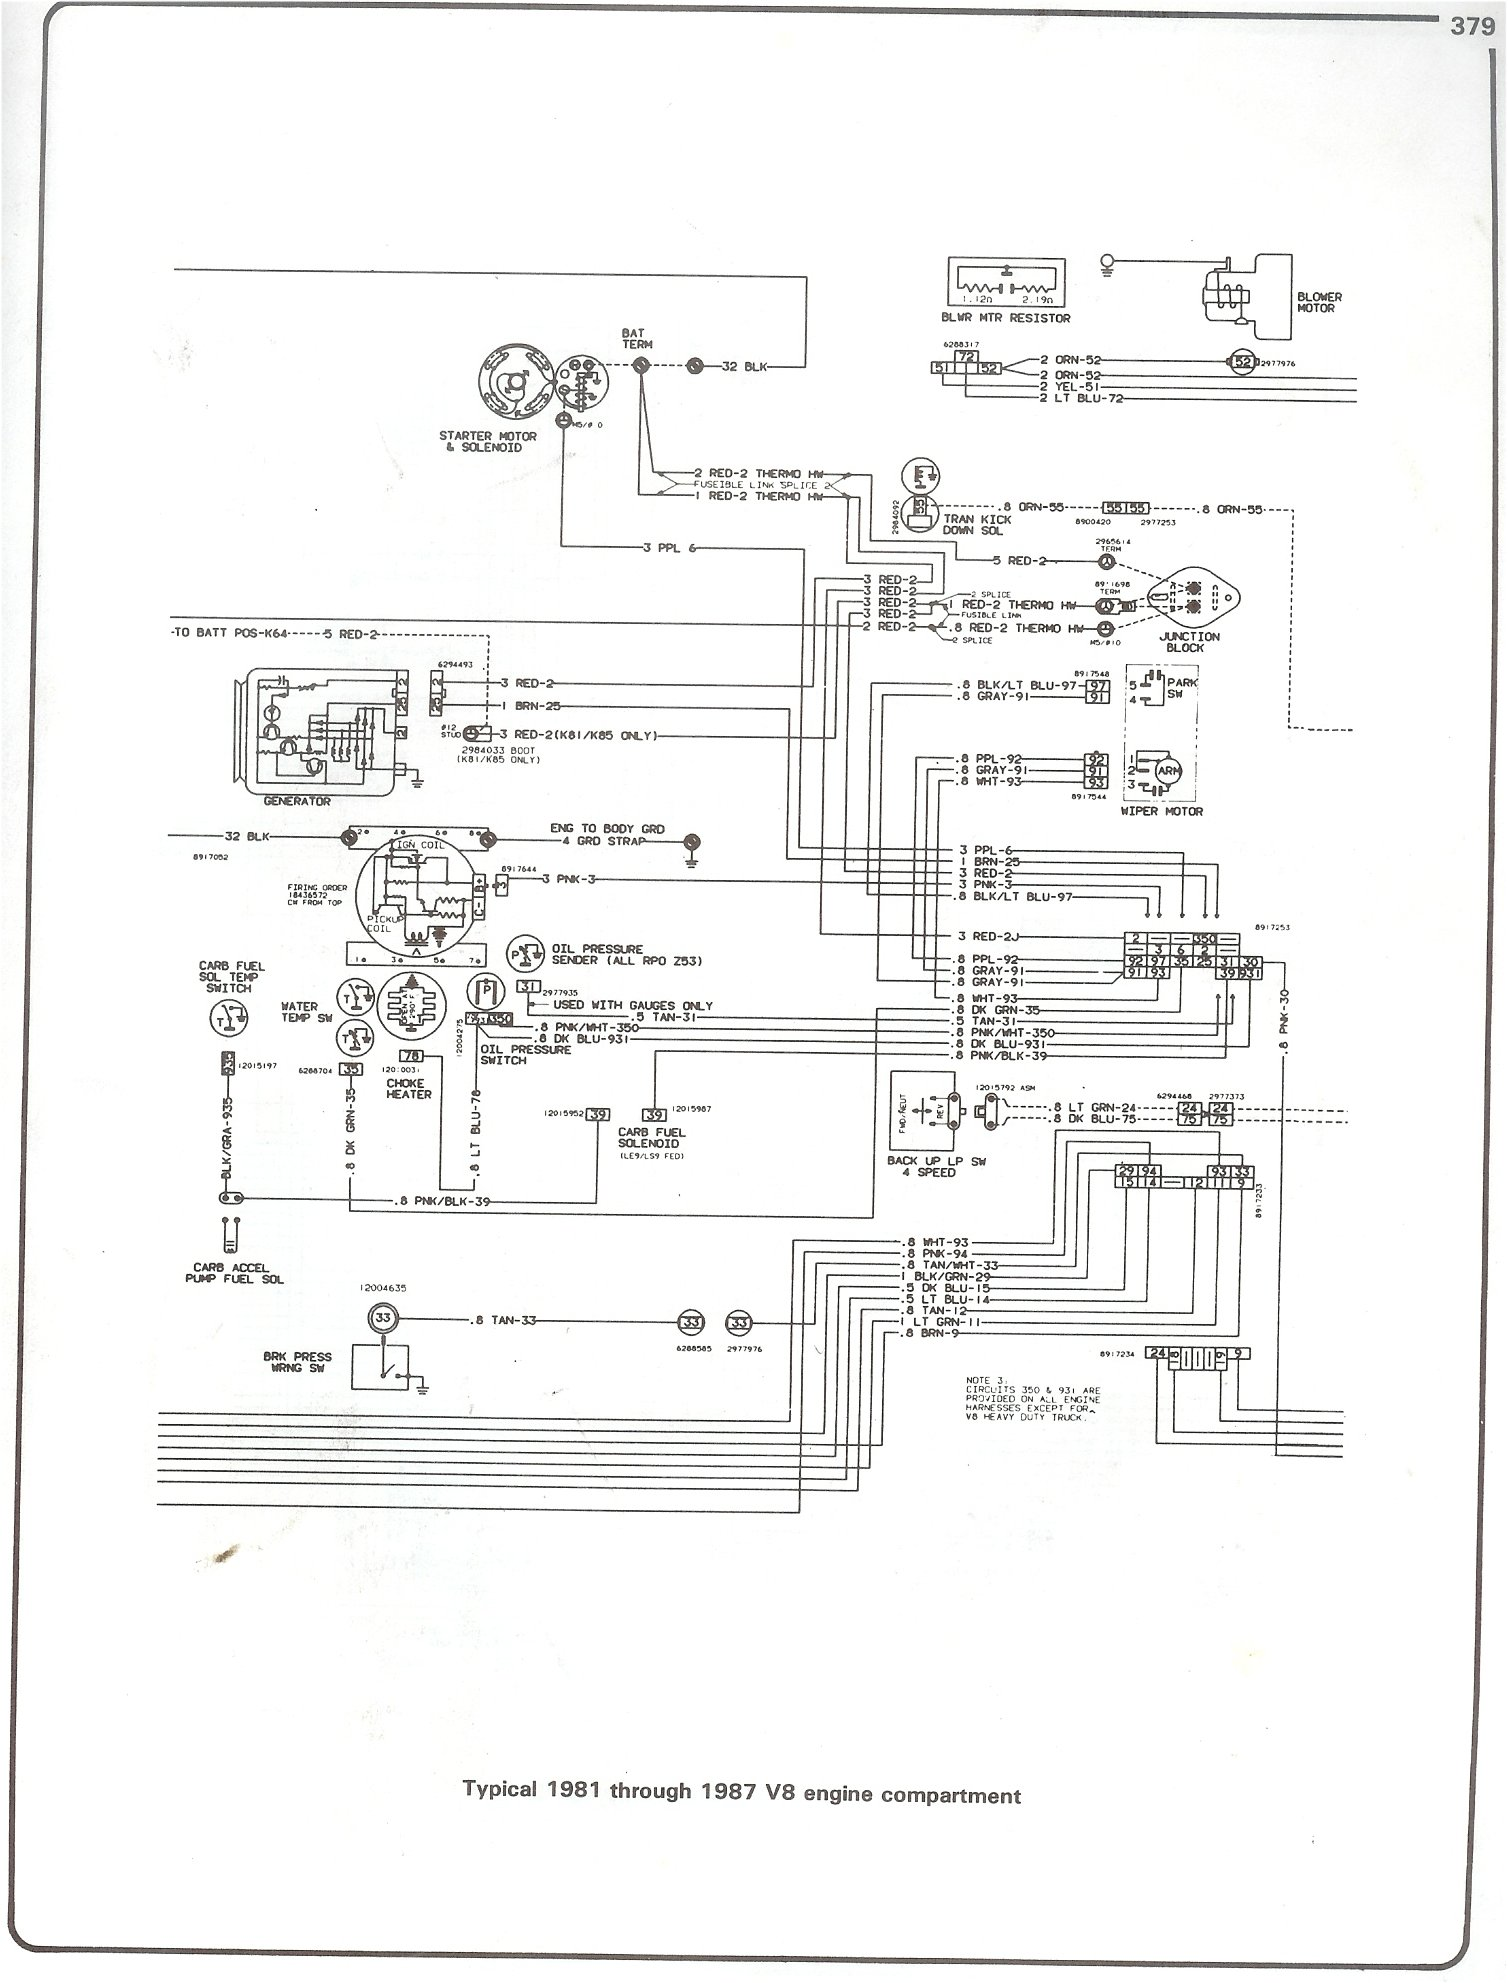 Complete 73 87 Wiring Diagrams 1974 Isuzu For Free 81 V8 Engine Compartment